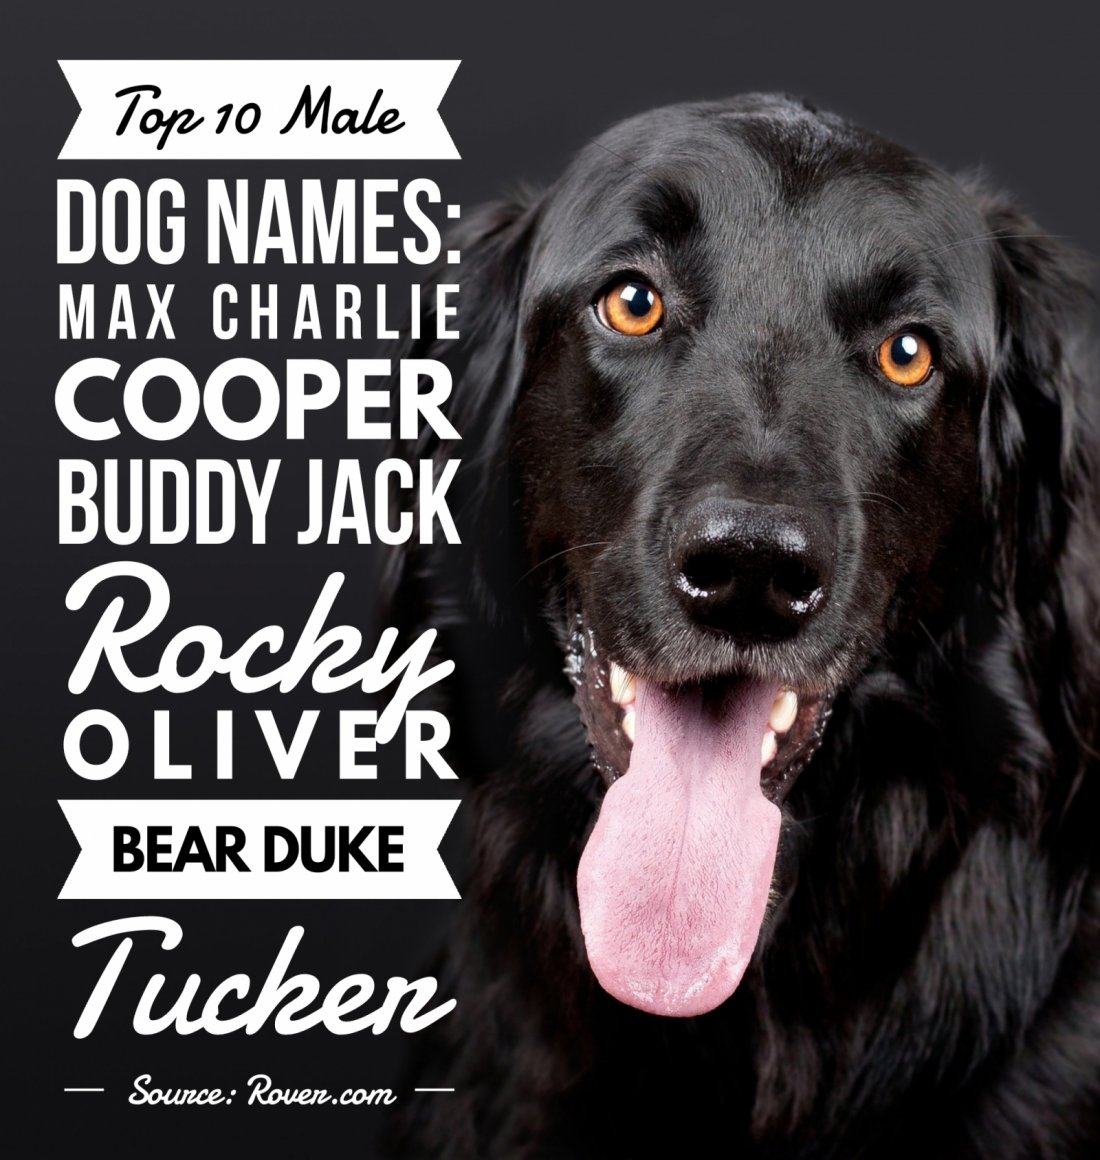 Top 10 Male Dog Names